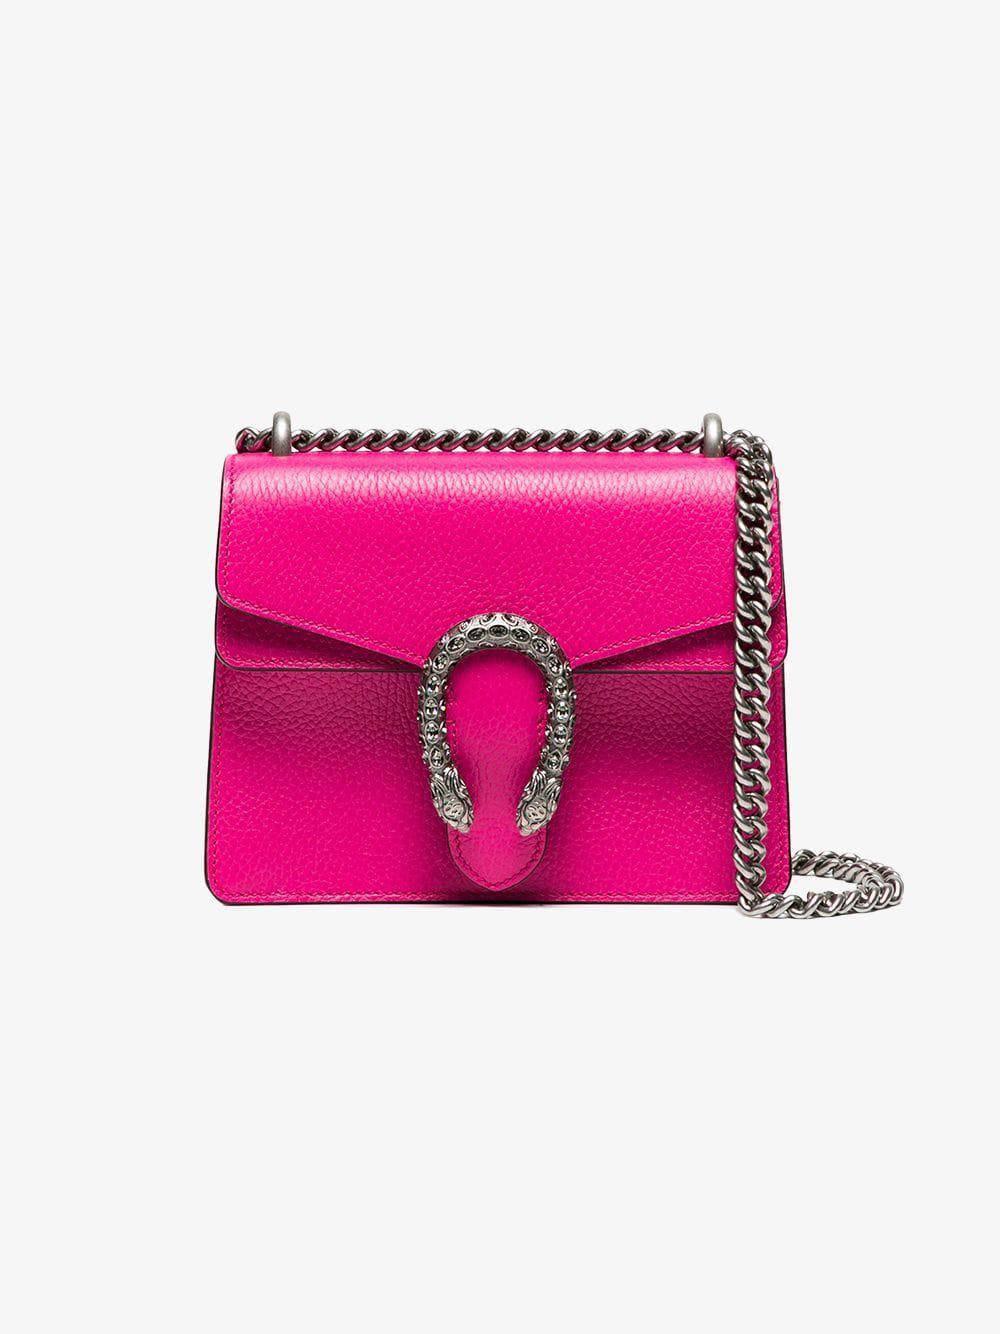 49110ffba9d3 Lyst - Gucci Pink Dionysus Small Leather Shoulder Bag in Pink - Save 29%